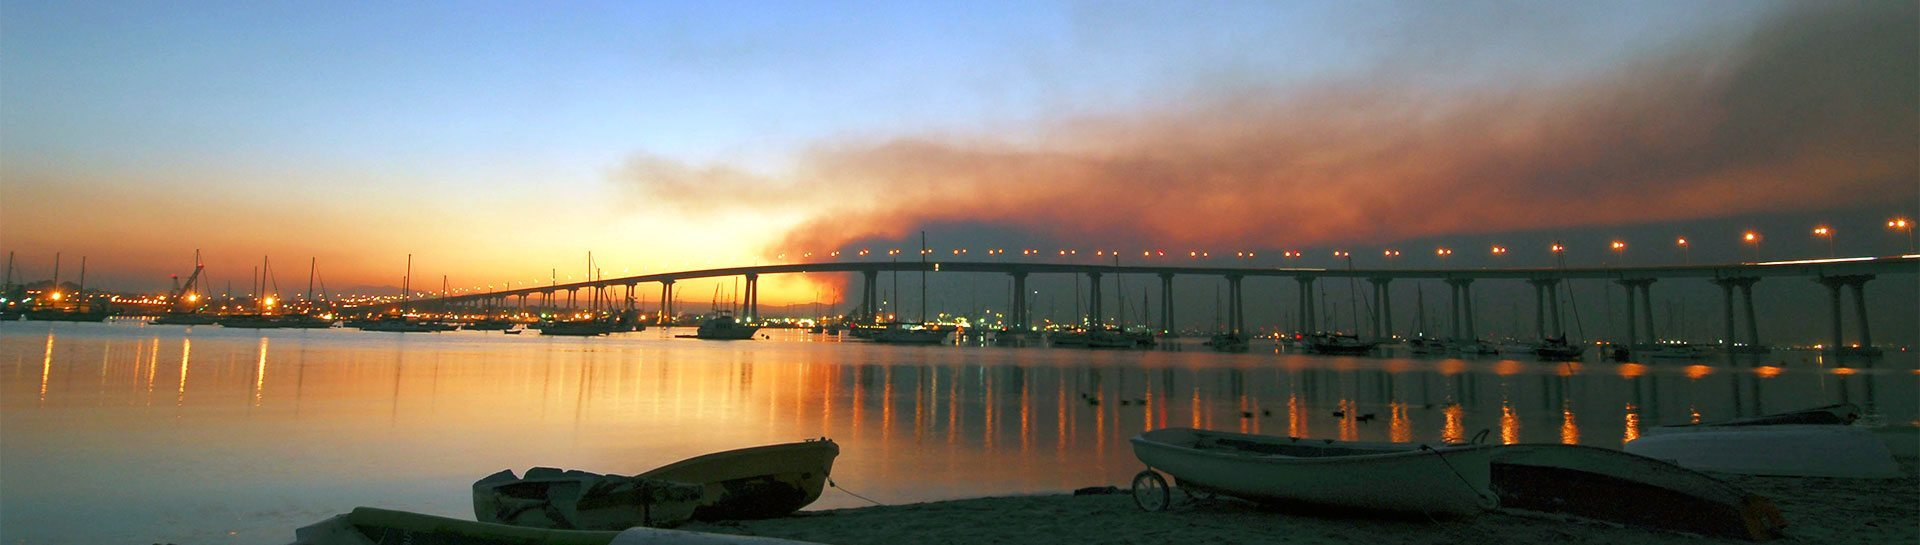 Coronado Bay Bridge panoramic